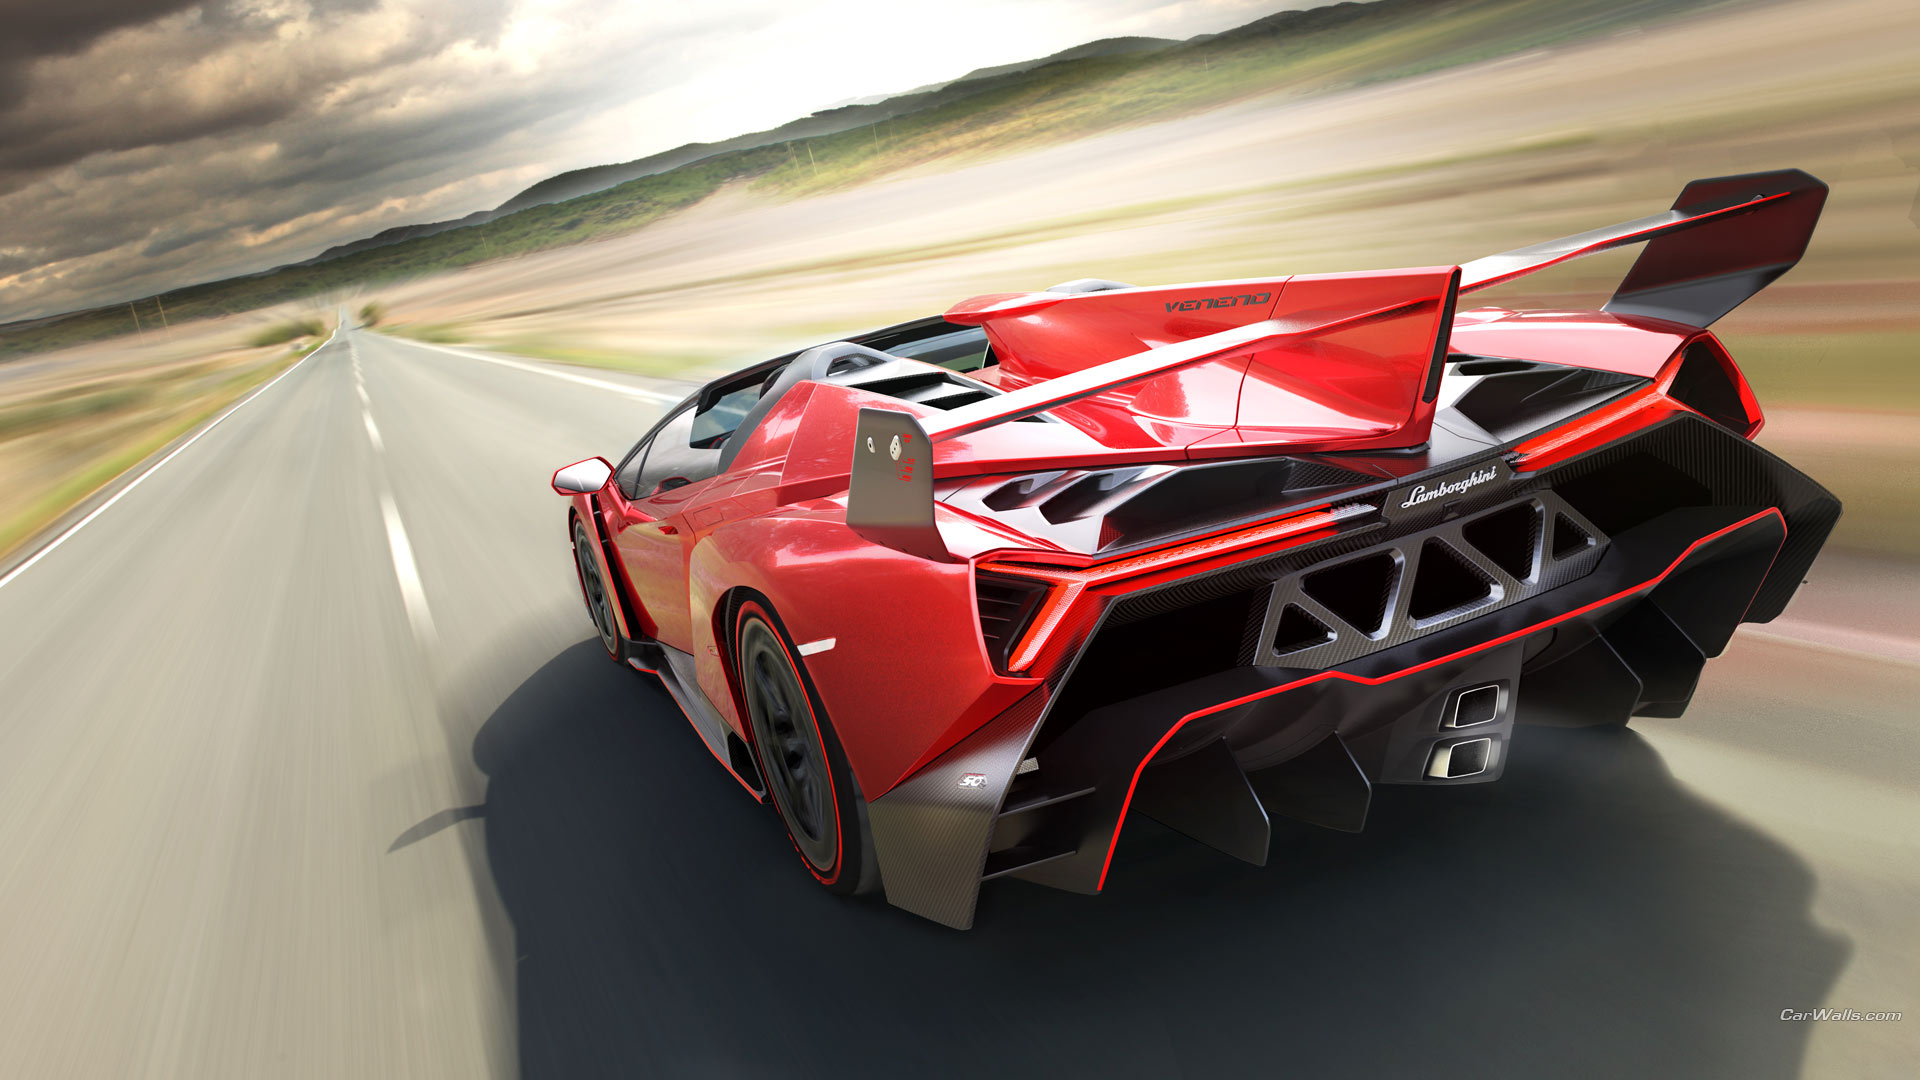 Lamborghini Veneno Wallpaper Fabulous Rainbow Te High Definition With Hd Full Pics Of 1920x1080